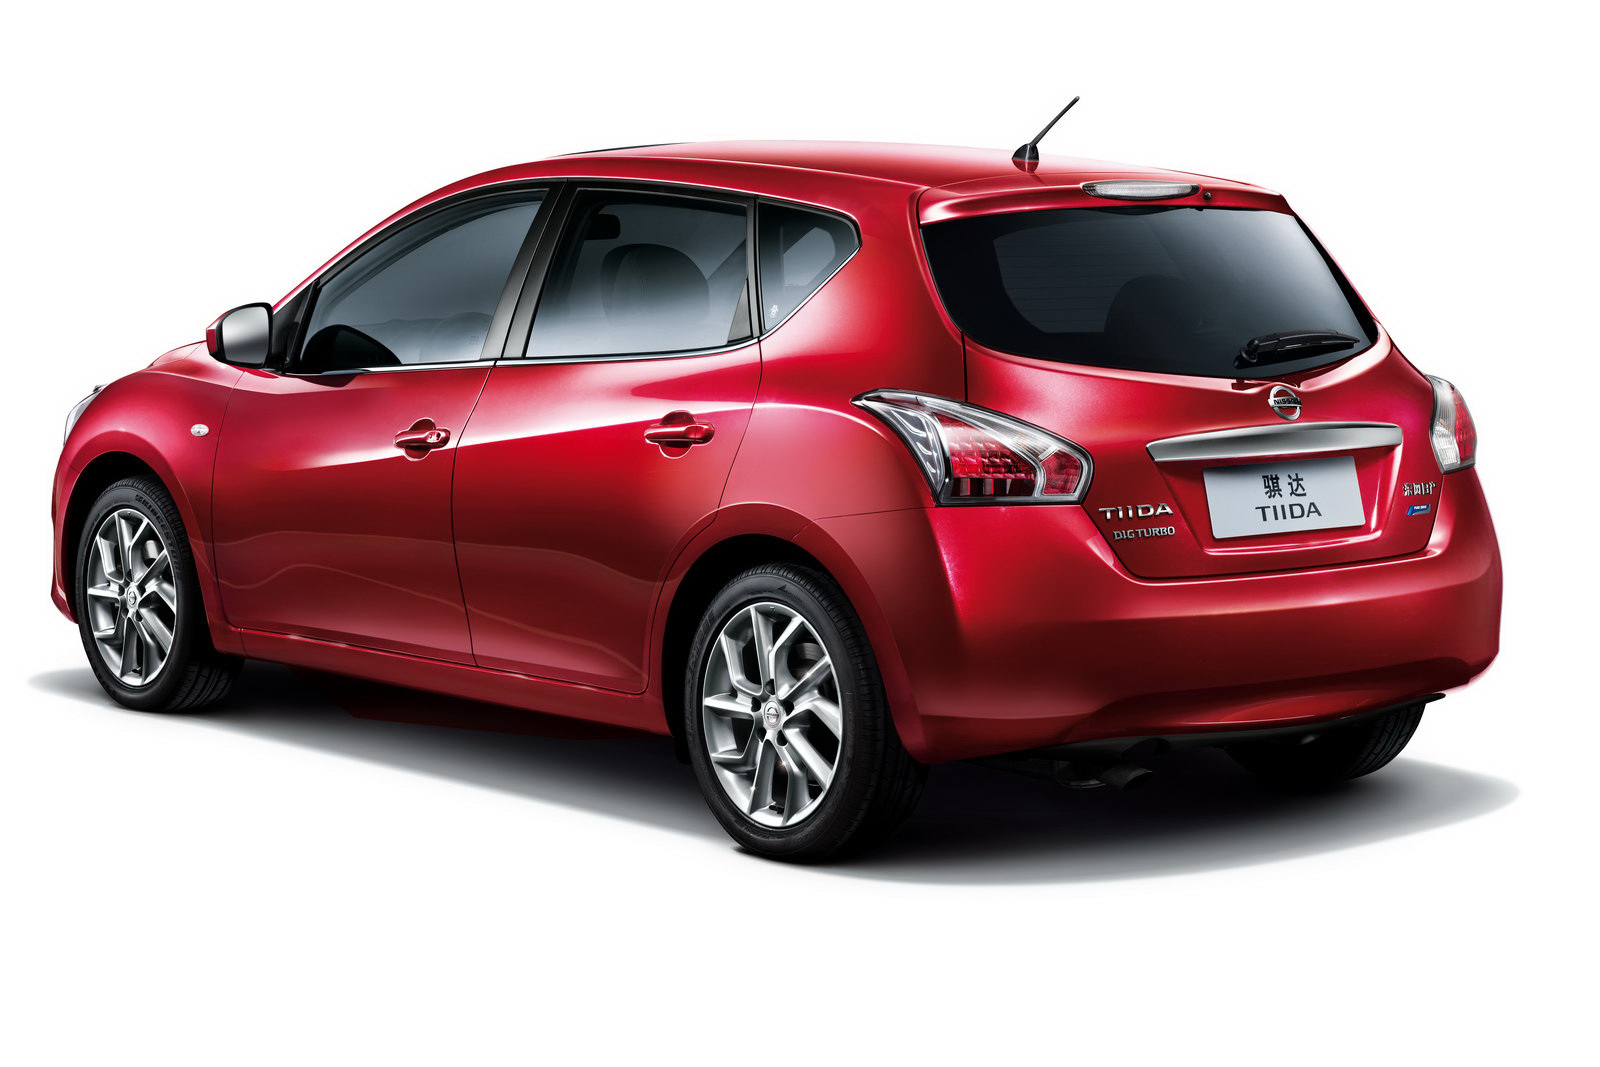 2016 Nissan Tiida Sedan Pictures Information And Specs